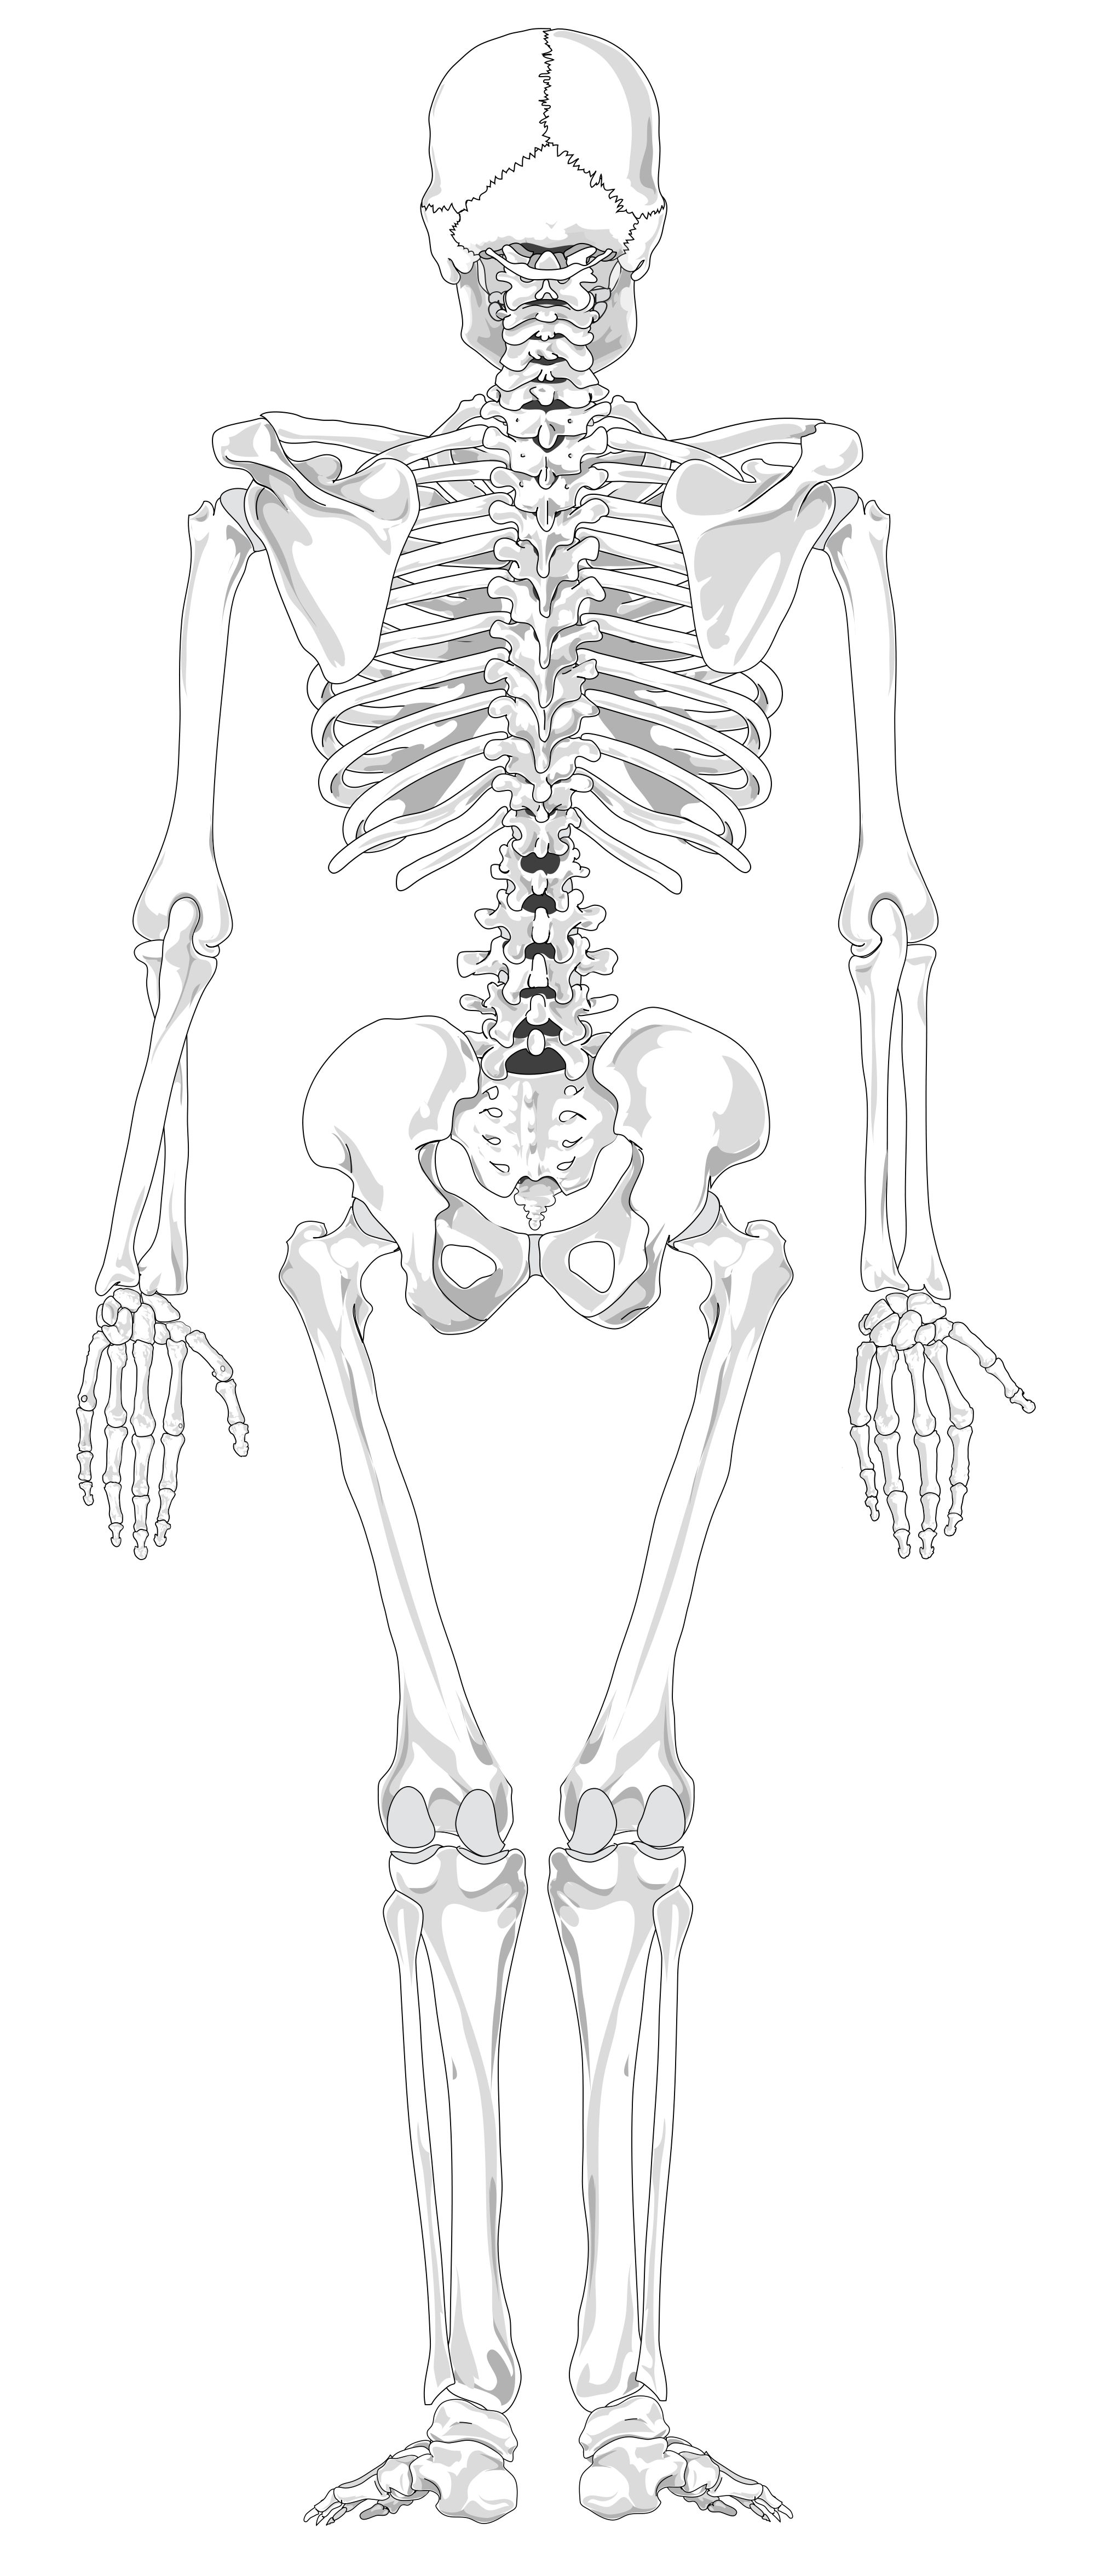 Unlabeled Diagram Of The Human Skeleton With Images